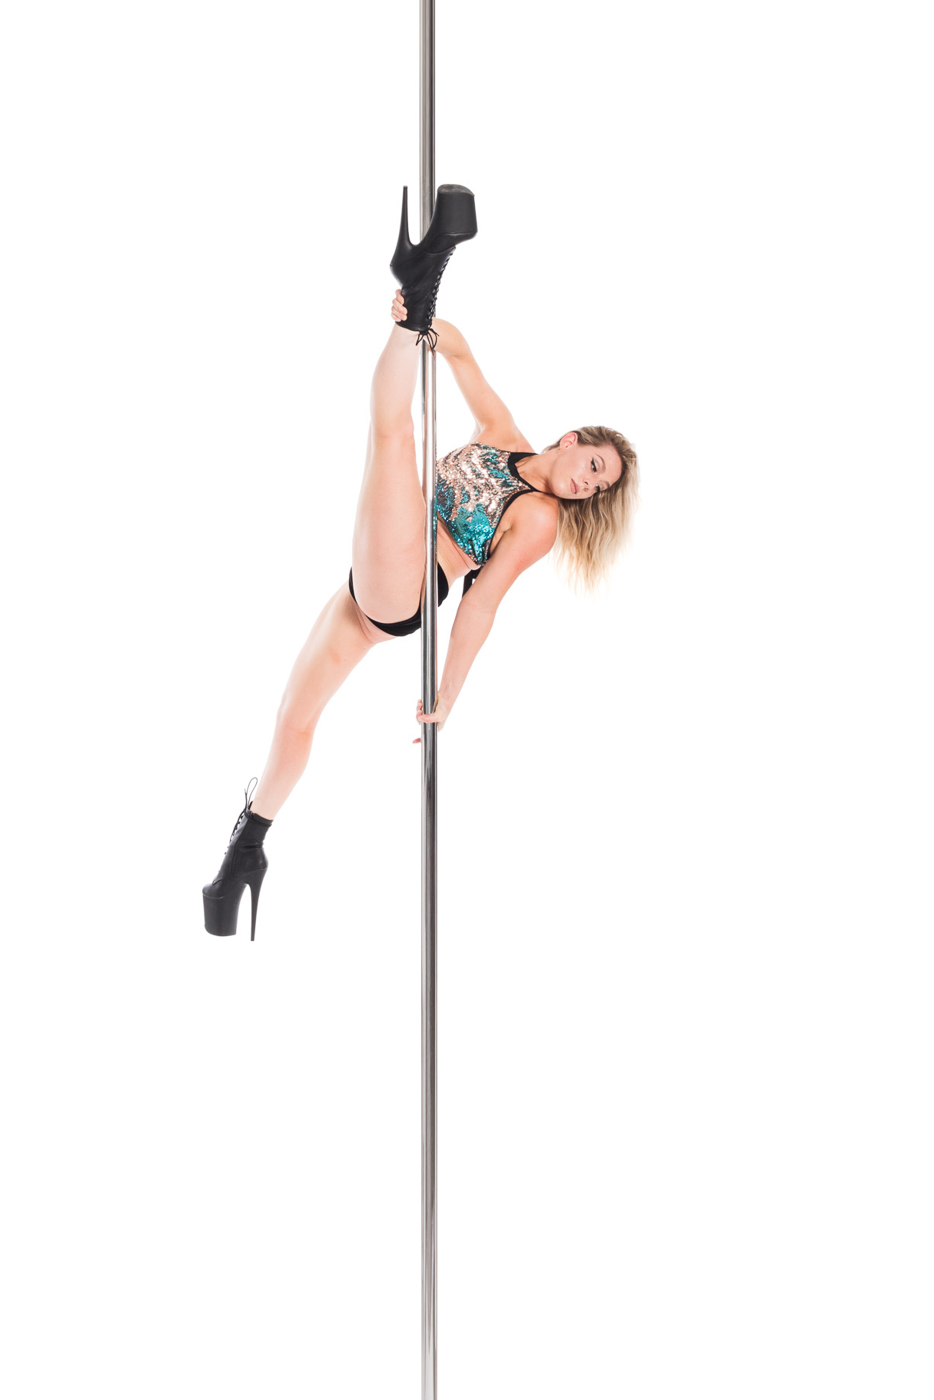 Featured Aradia Fitness Calgary instructor Jordanna in forearm hold split on pole